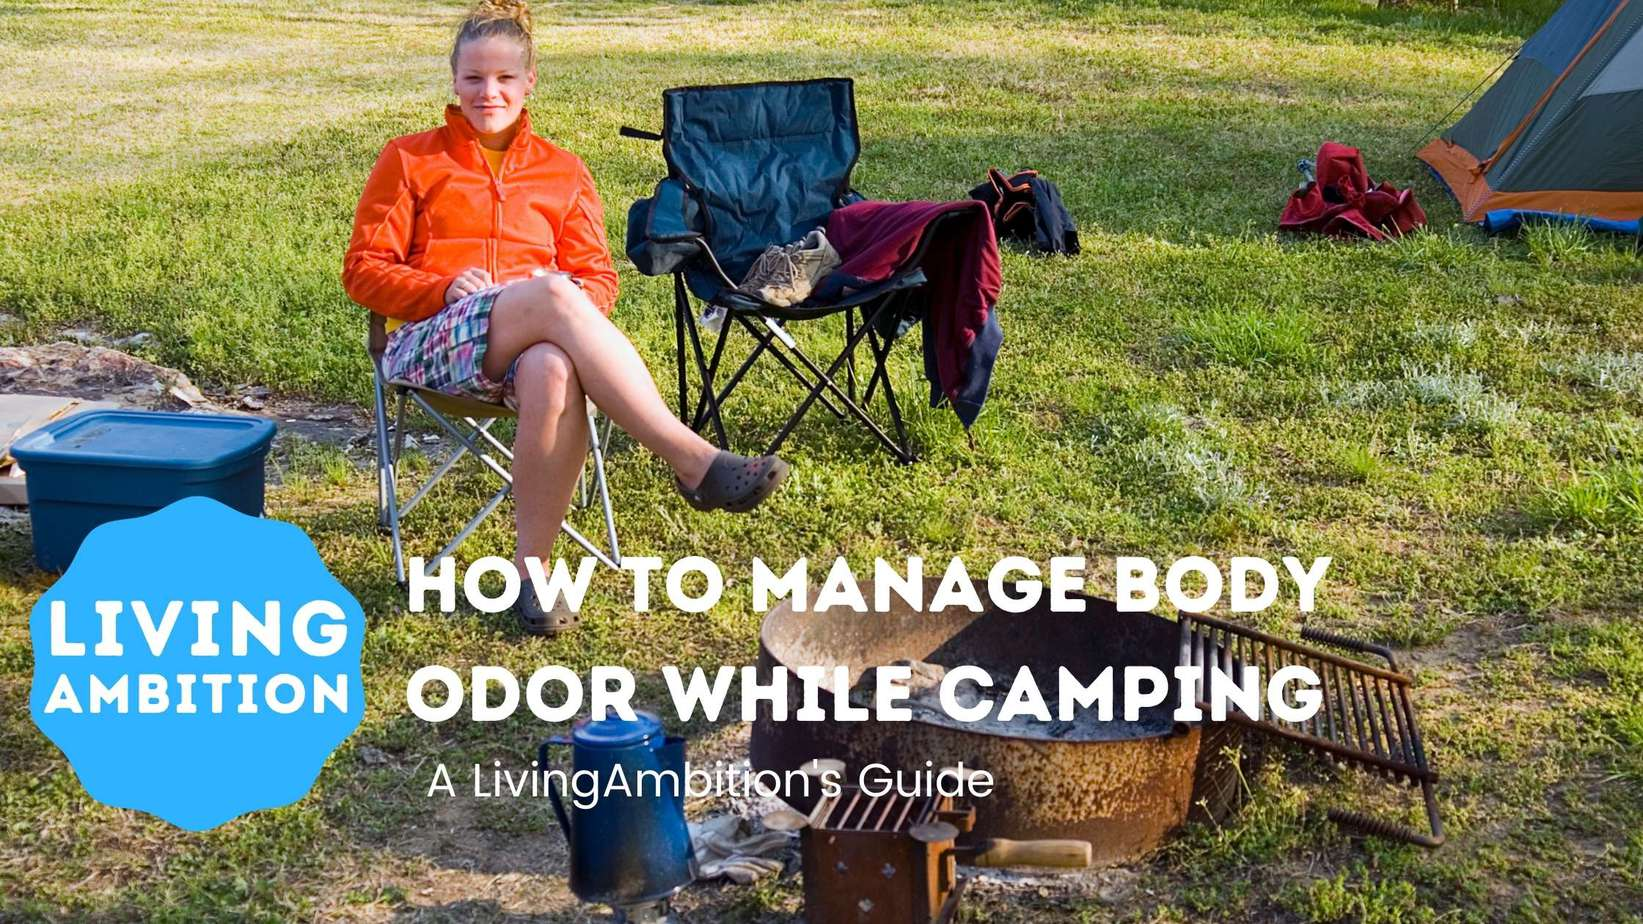 how to manage body odor while camping